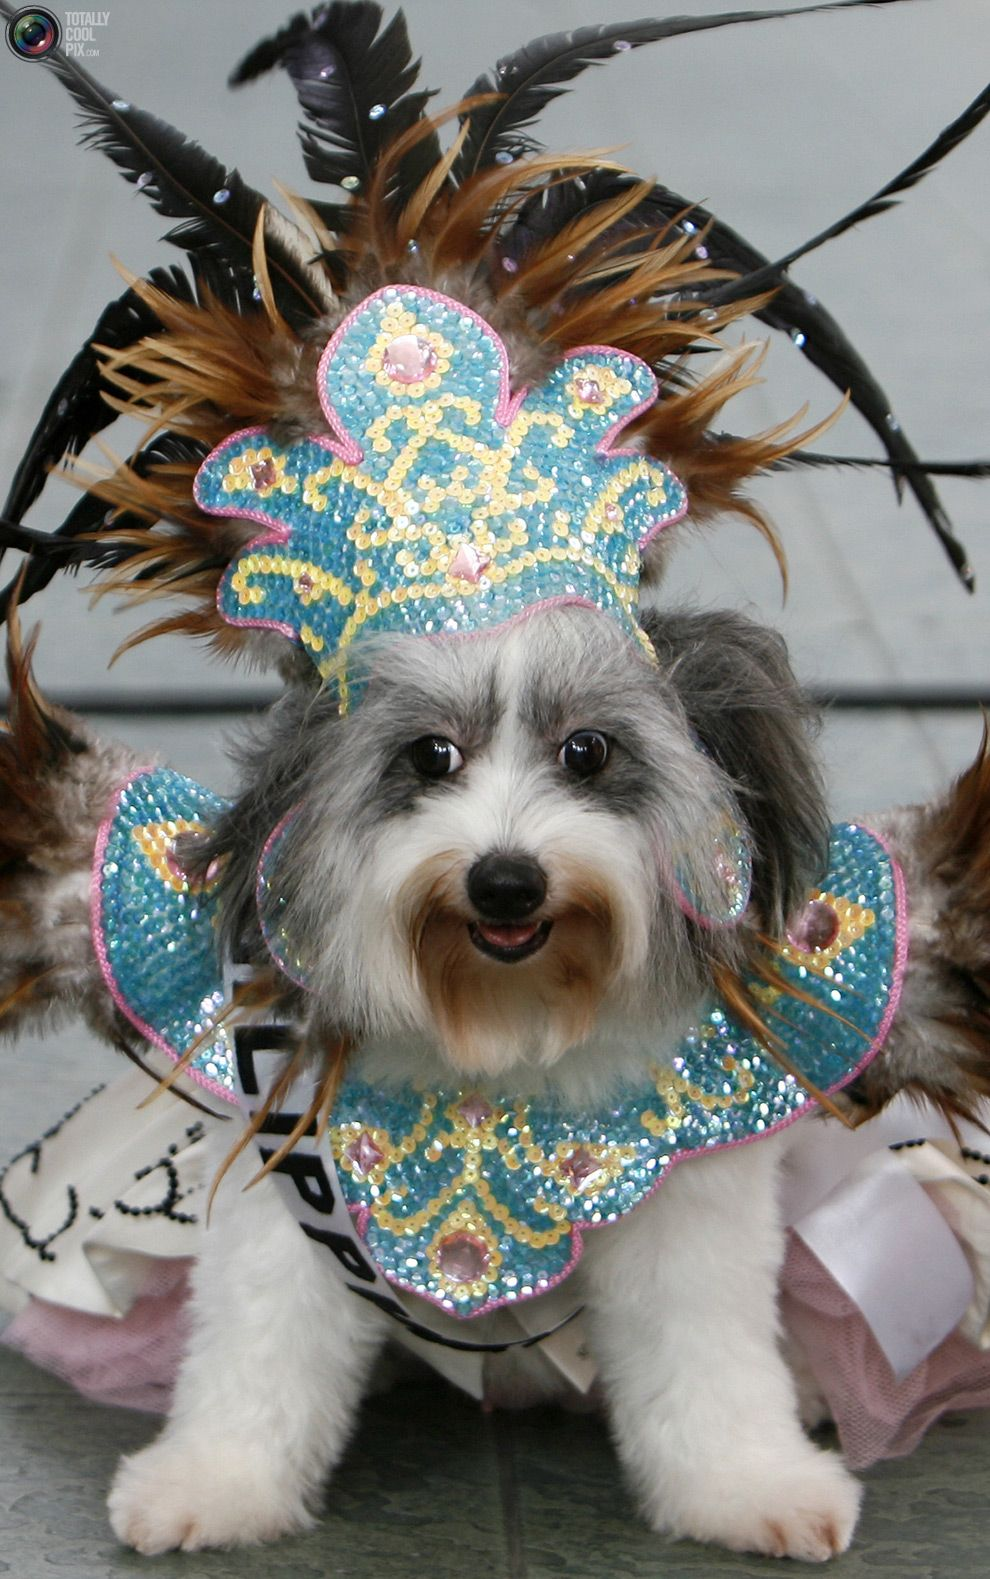 Julia A Shih Tzu Japanese Spitz Cross Dressed In A Native Filipino Costume Waits For Her Turn During The Fashionis Dressed Up Dogs Animal Dress Up Fancy Hats